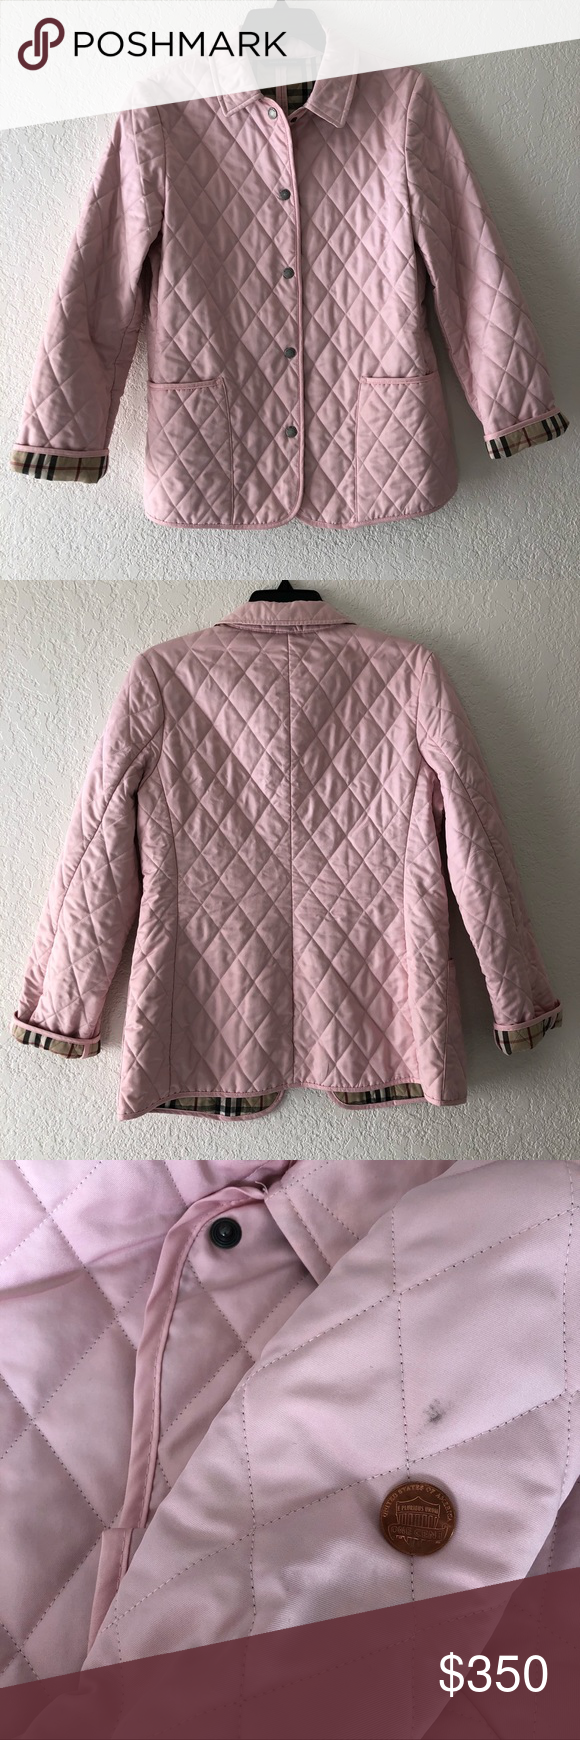 Burberry Diamond Quilted Light Pink Snap Jacket With Images Pop Stitch Quilted Jacket Fashion